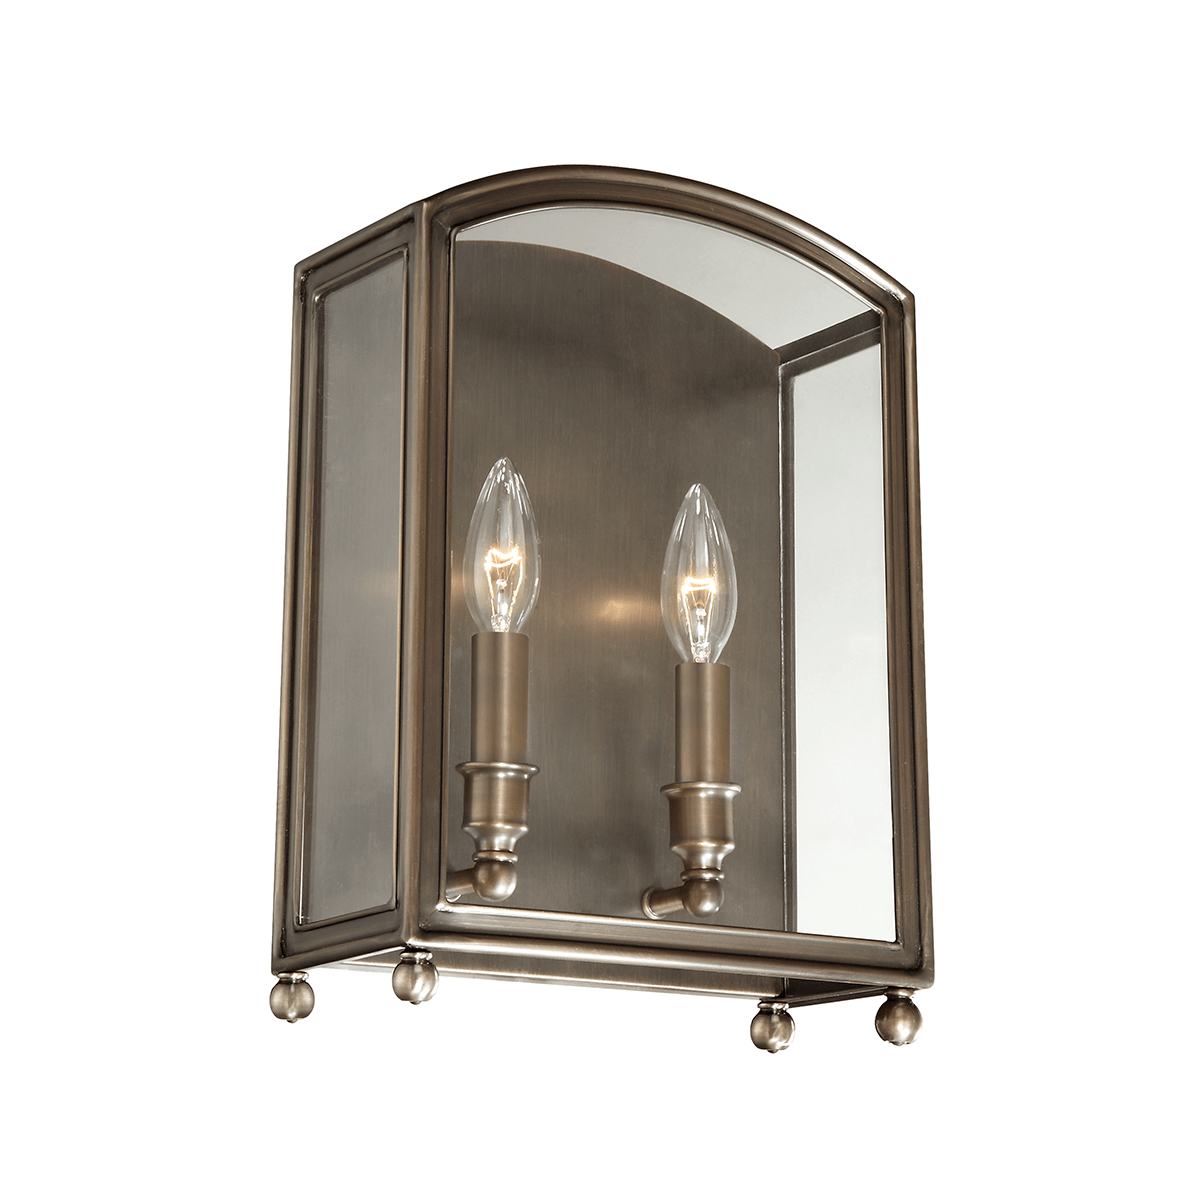 Hudson Valley Lighting Hudson Valley Lighting Millbrook 2-Bulb Sconce - Distressed Bronze & Clear 8402-DB